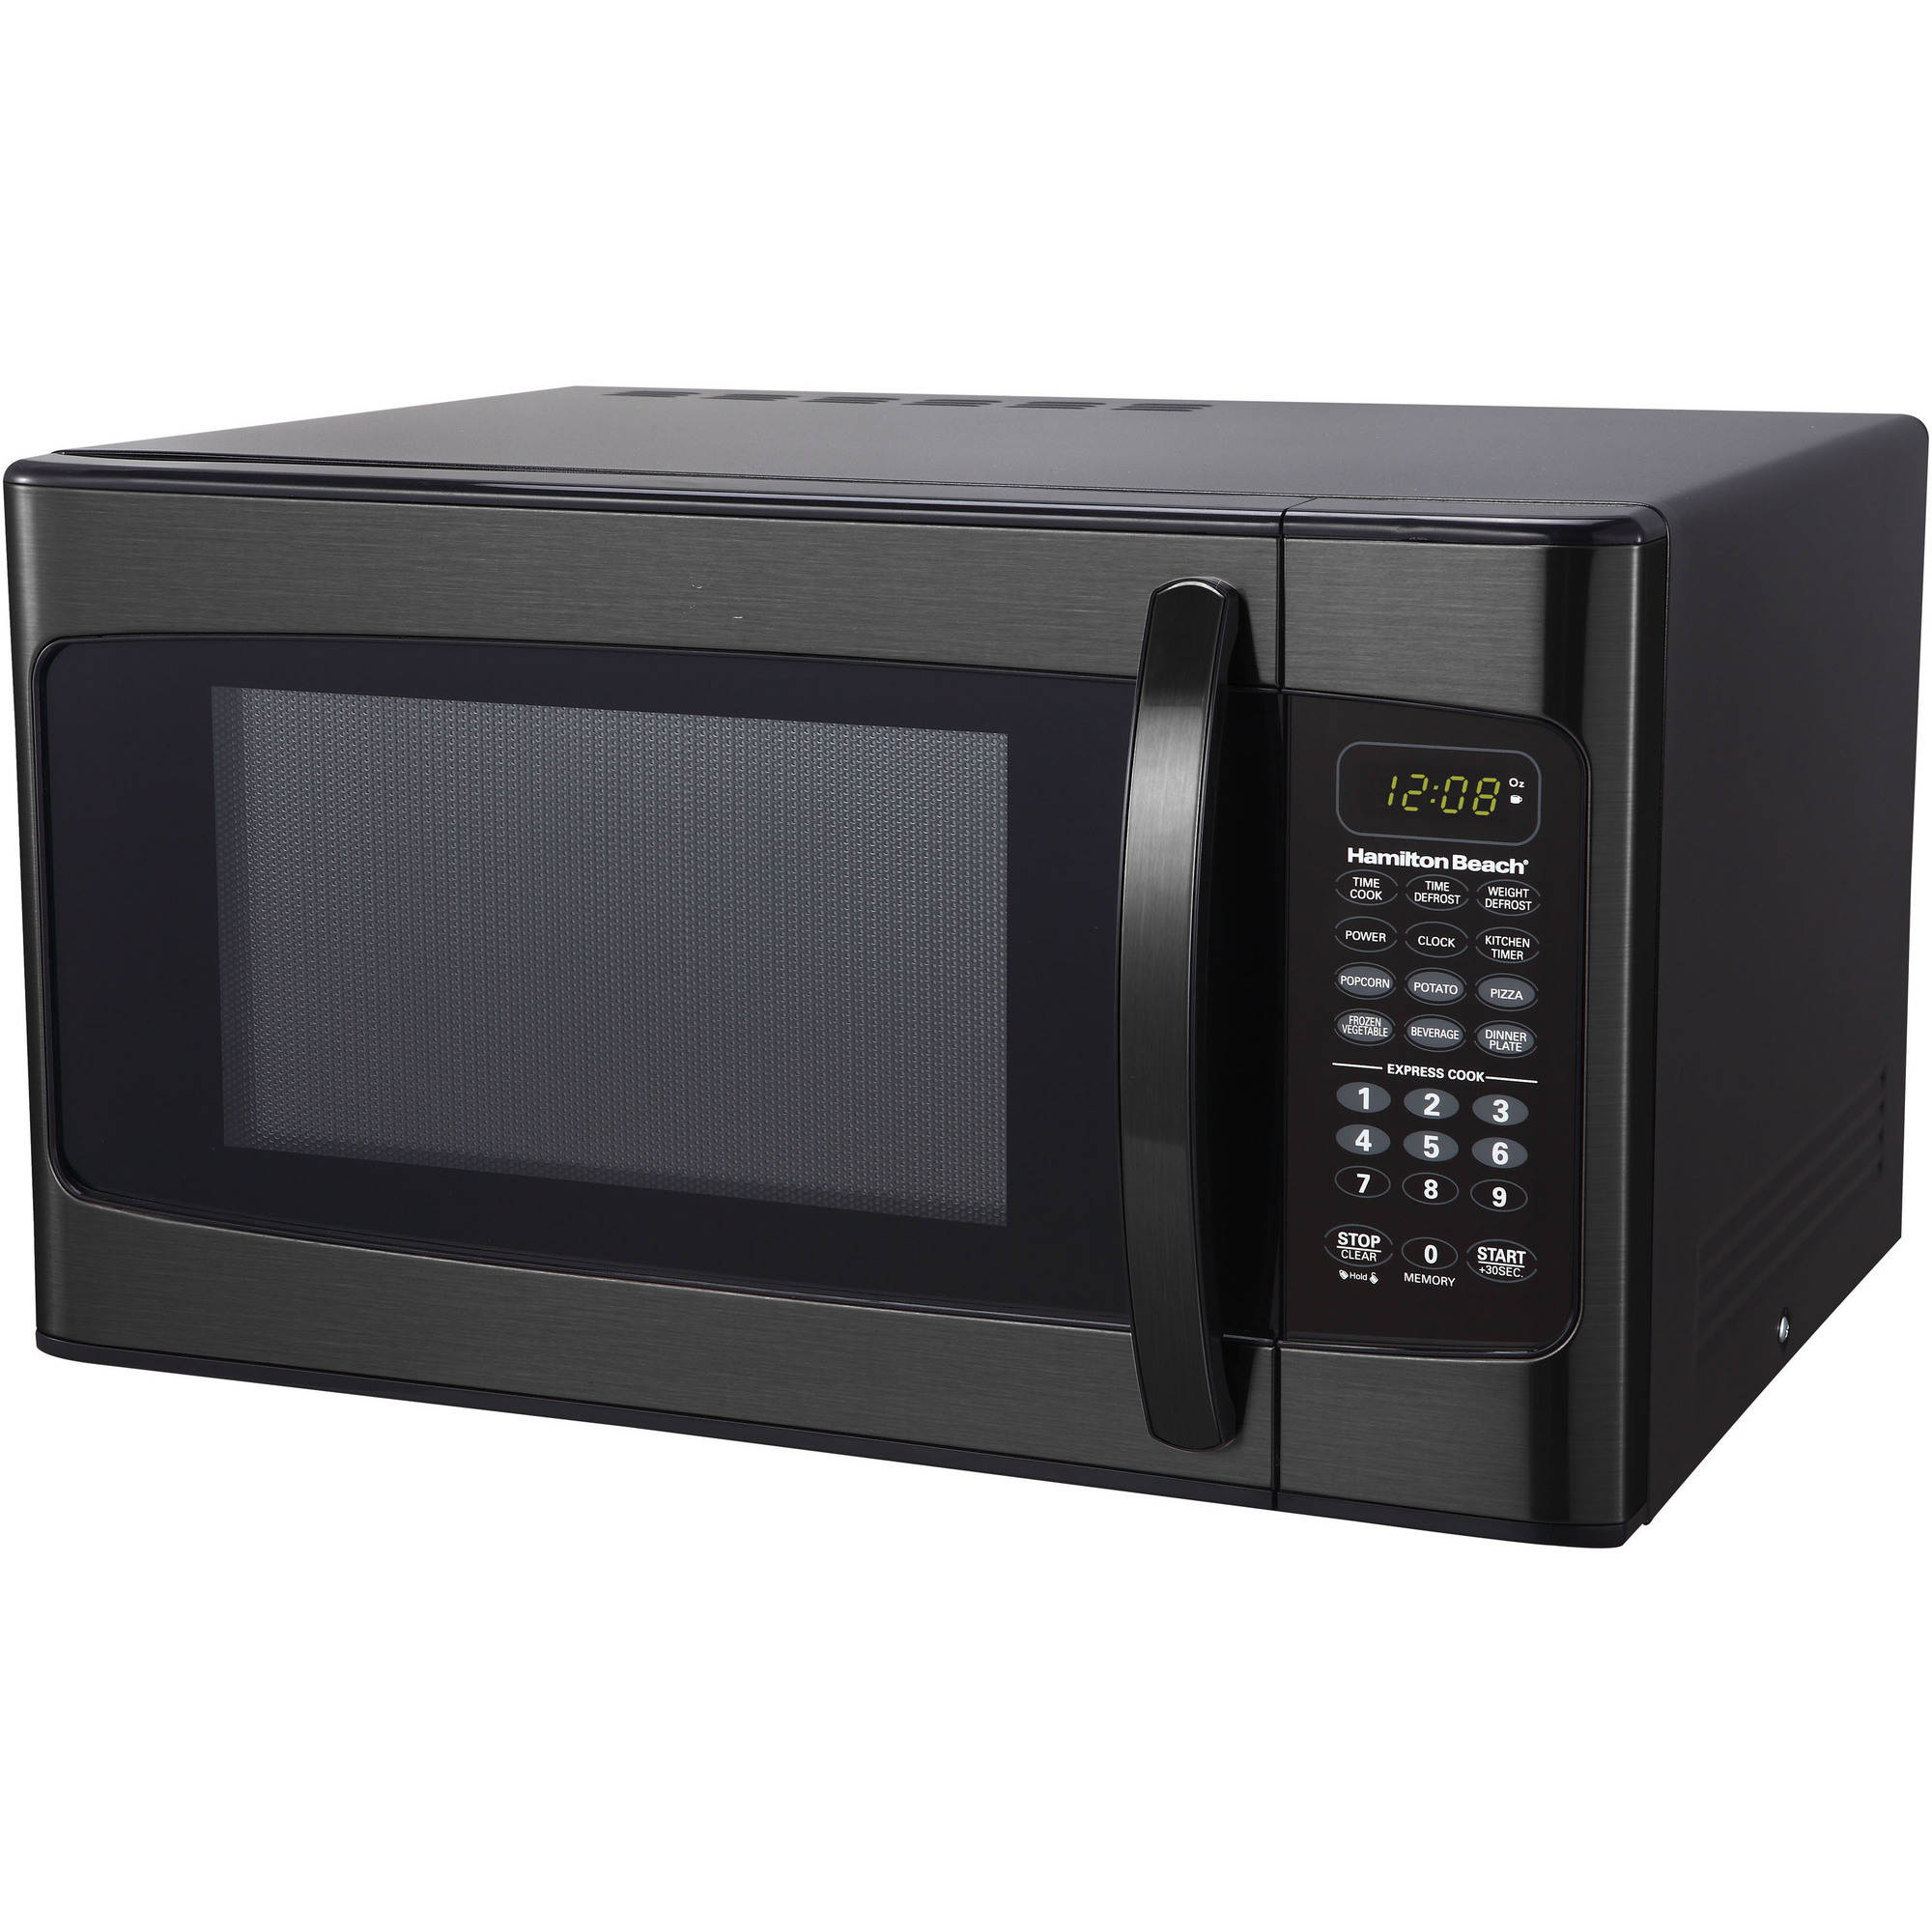 Hamilton Beach 1.1 Cu. Ft. 1000 Watt Black & Stainless Steel Microwave Oven, 1 Each